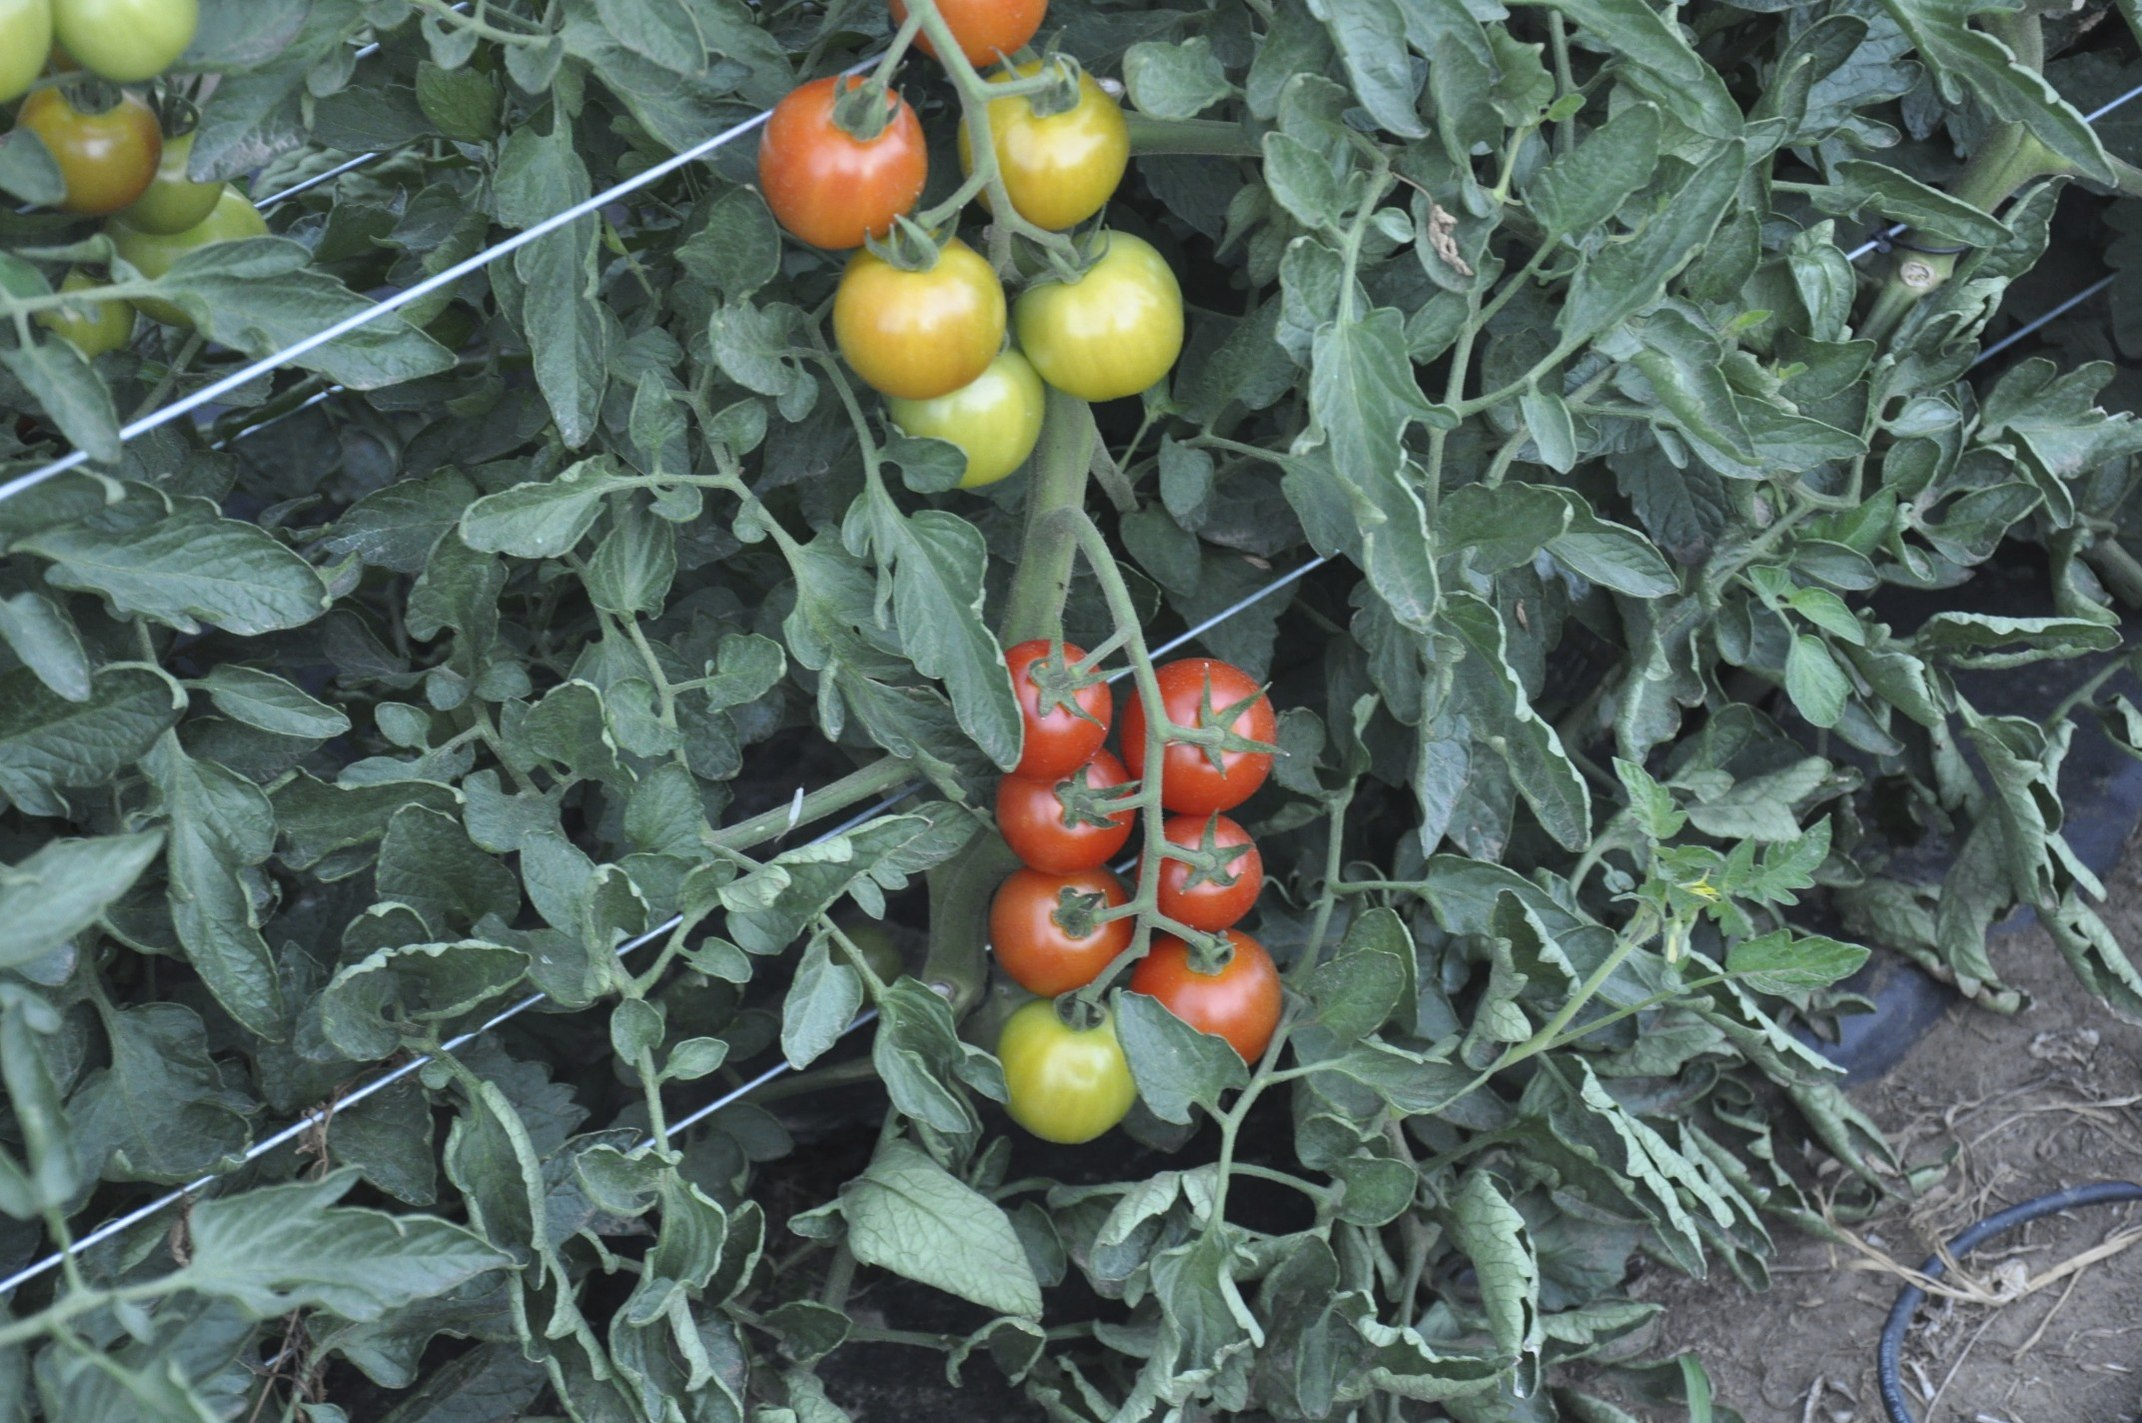 Tomato Wuppertal List Of Tomato Cultivars The Complete Information And Online